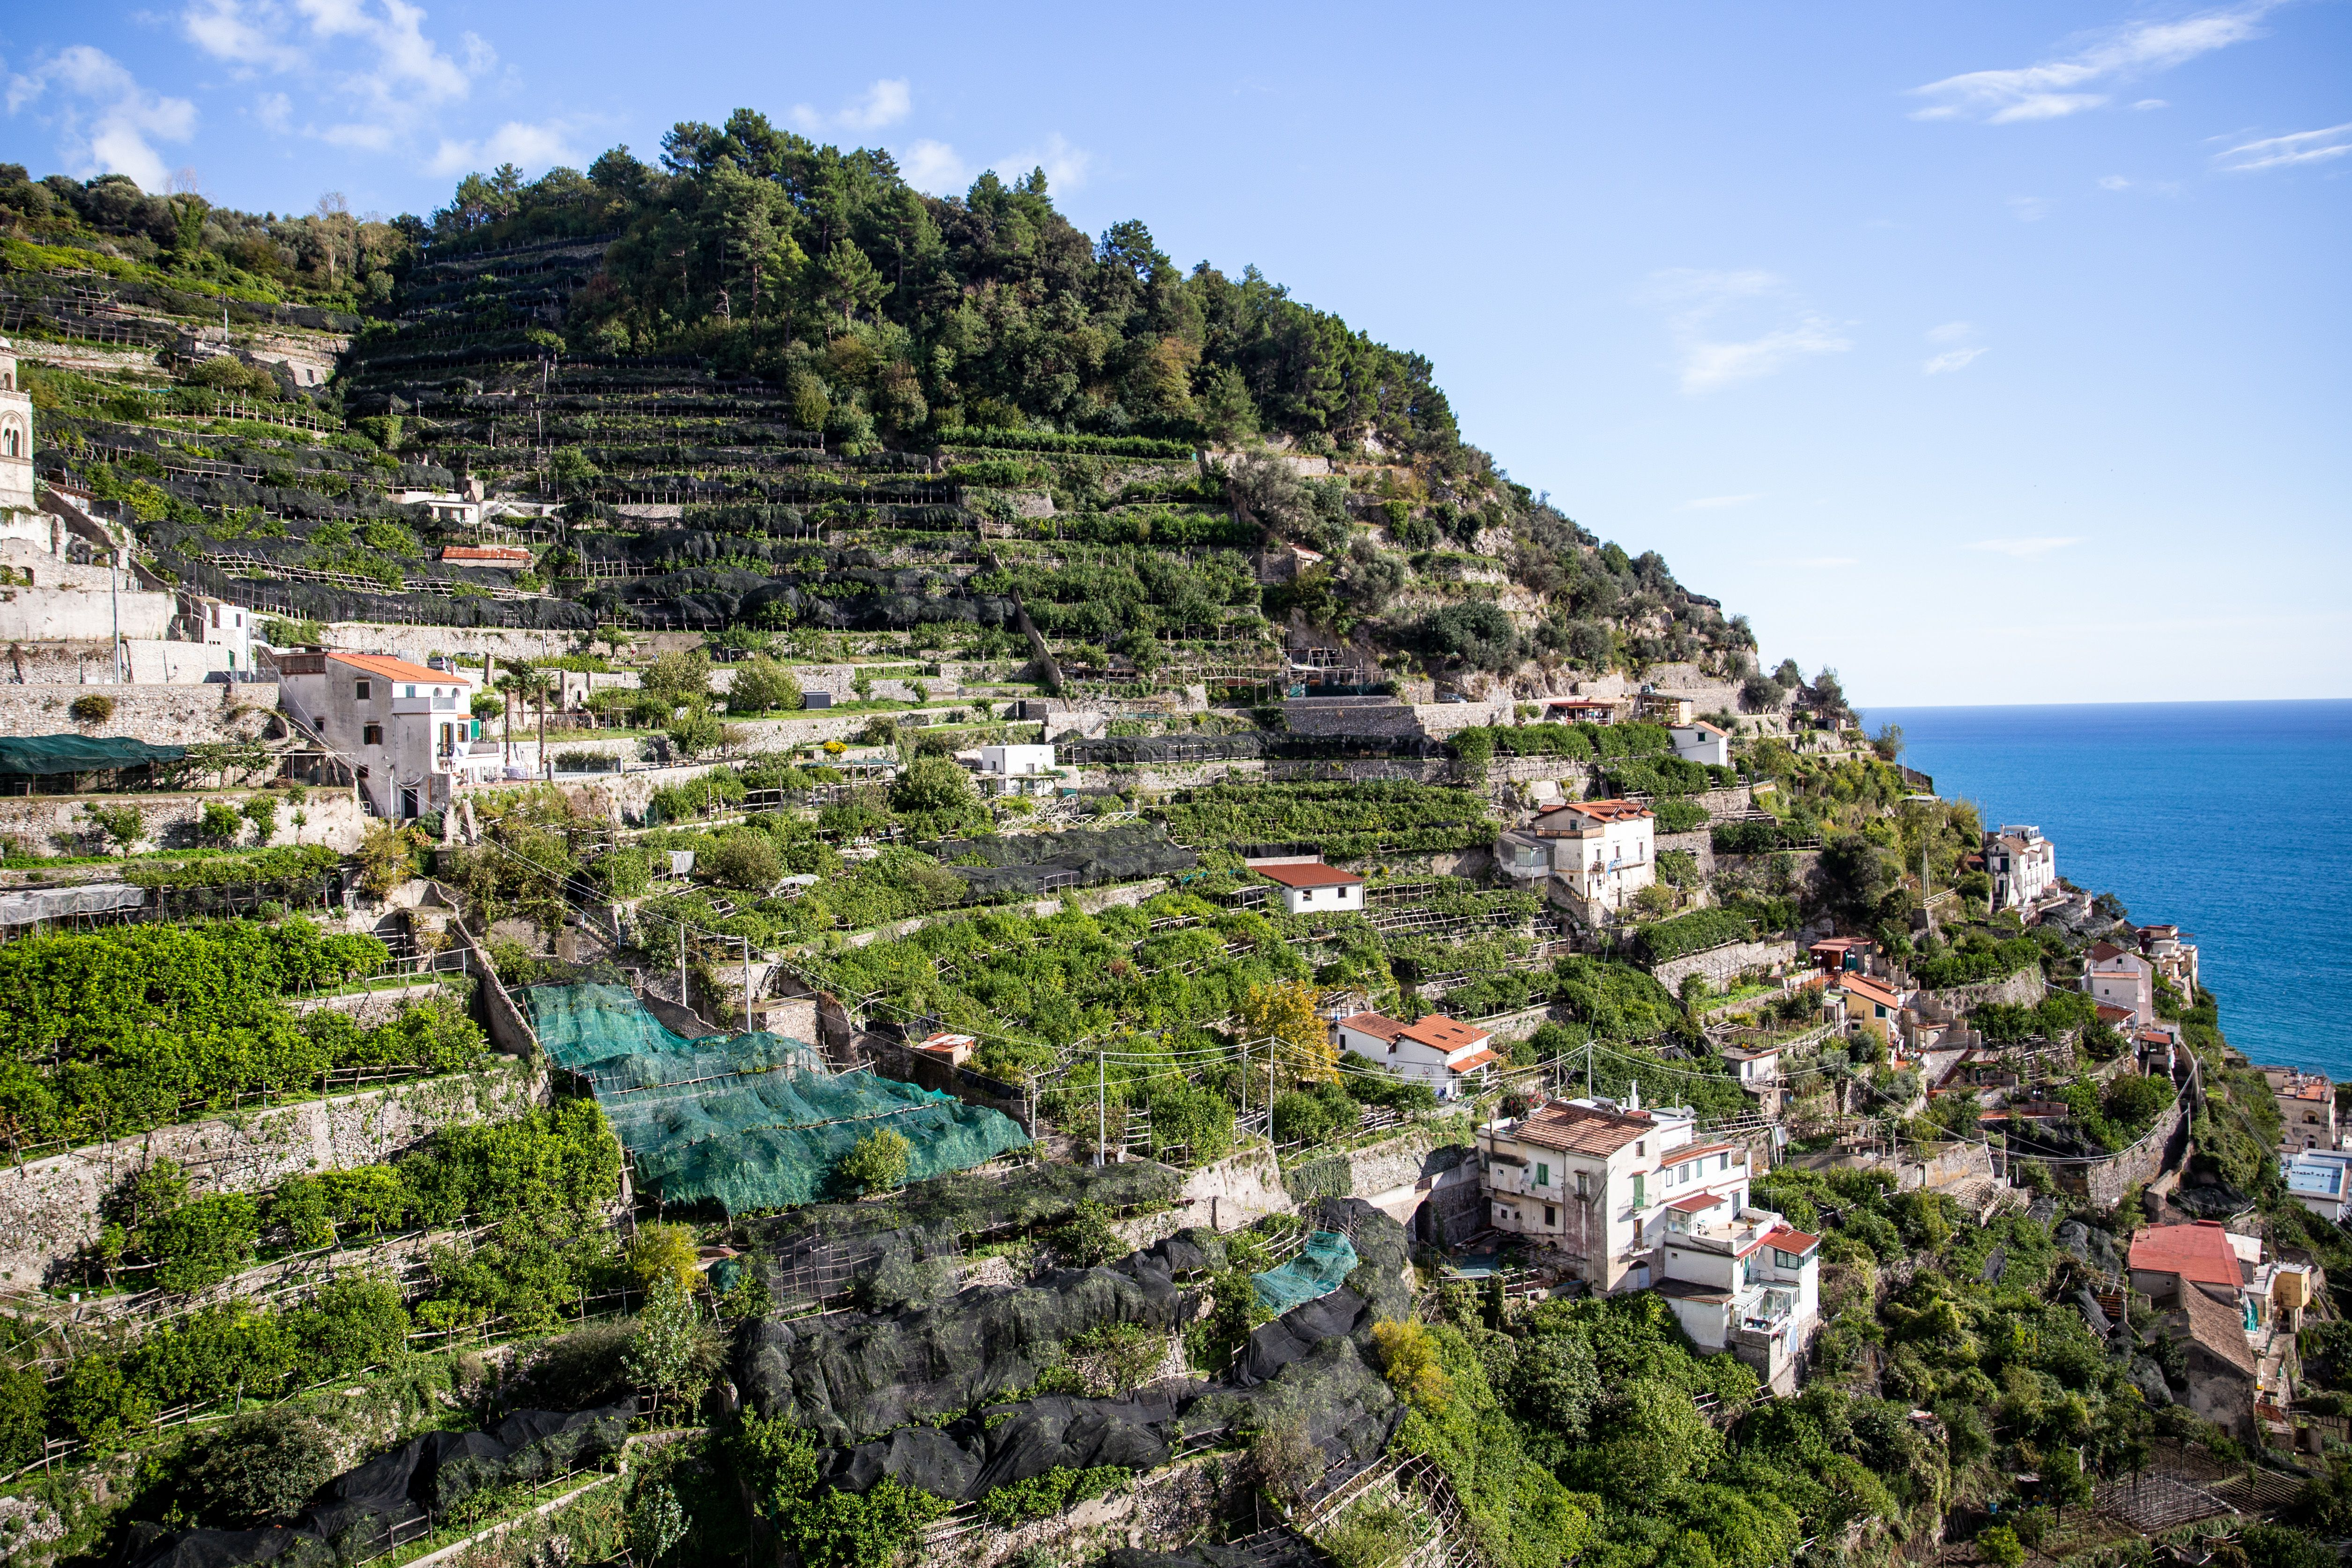 Your Trip to the Amalfi Coast: The Complete Guide